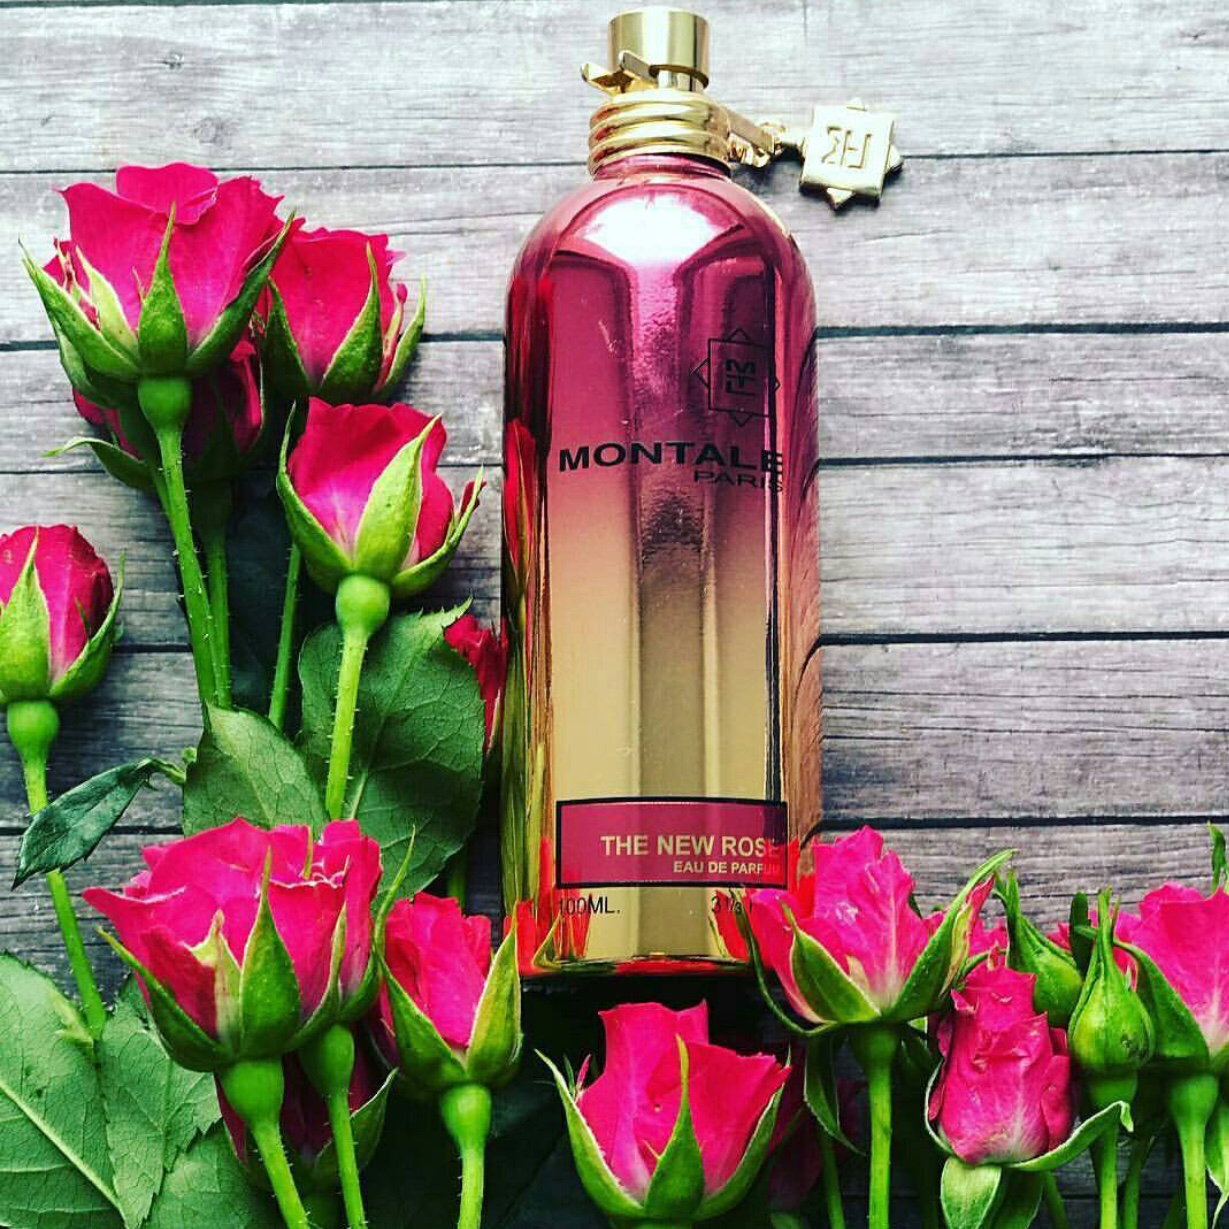 Montale - The new rose